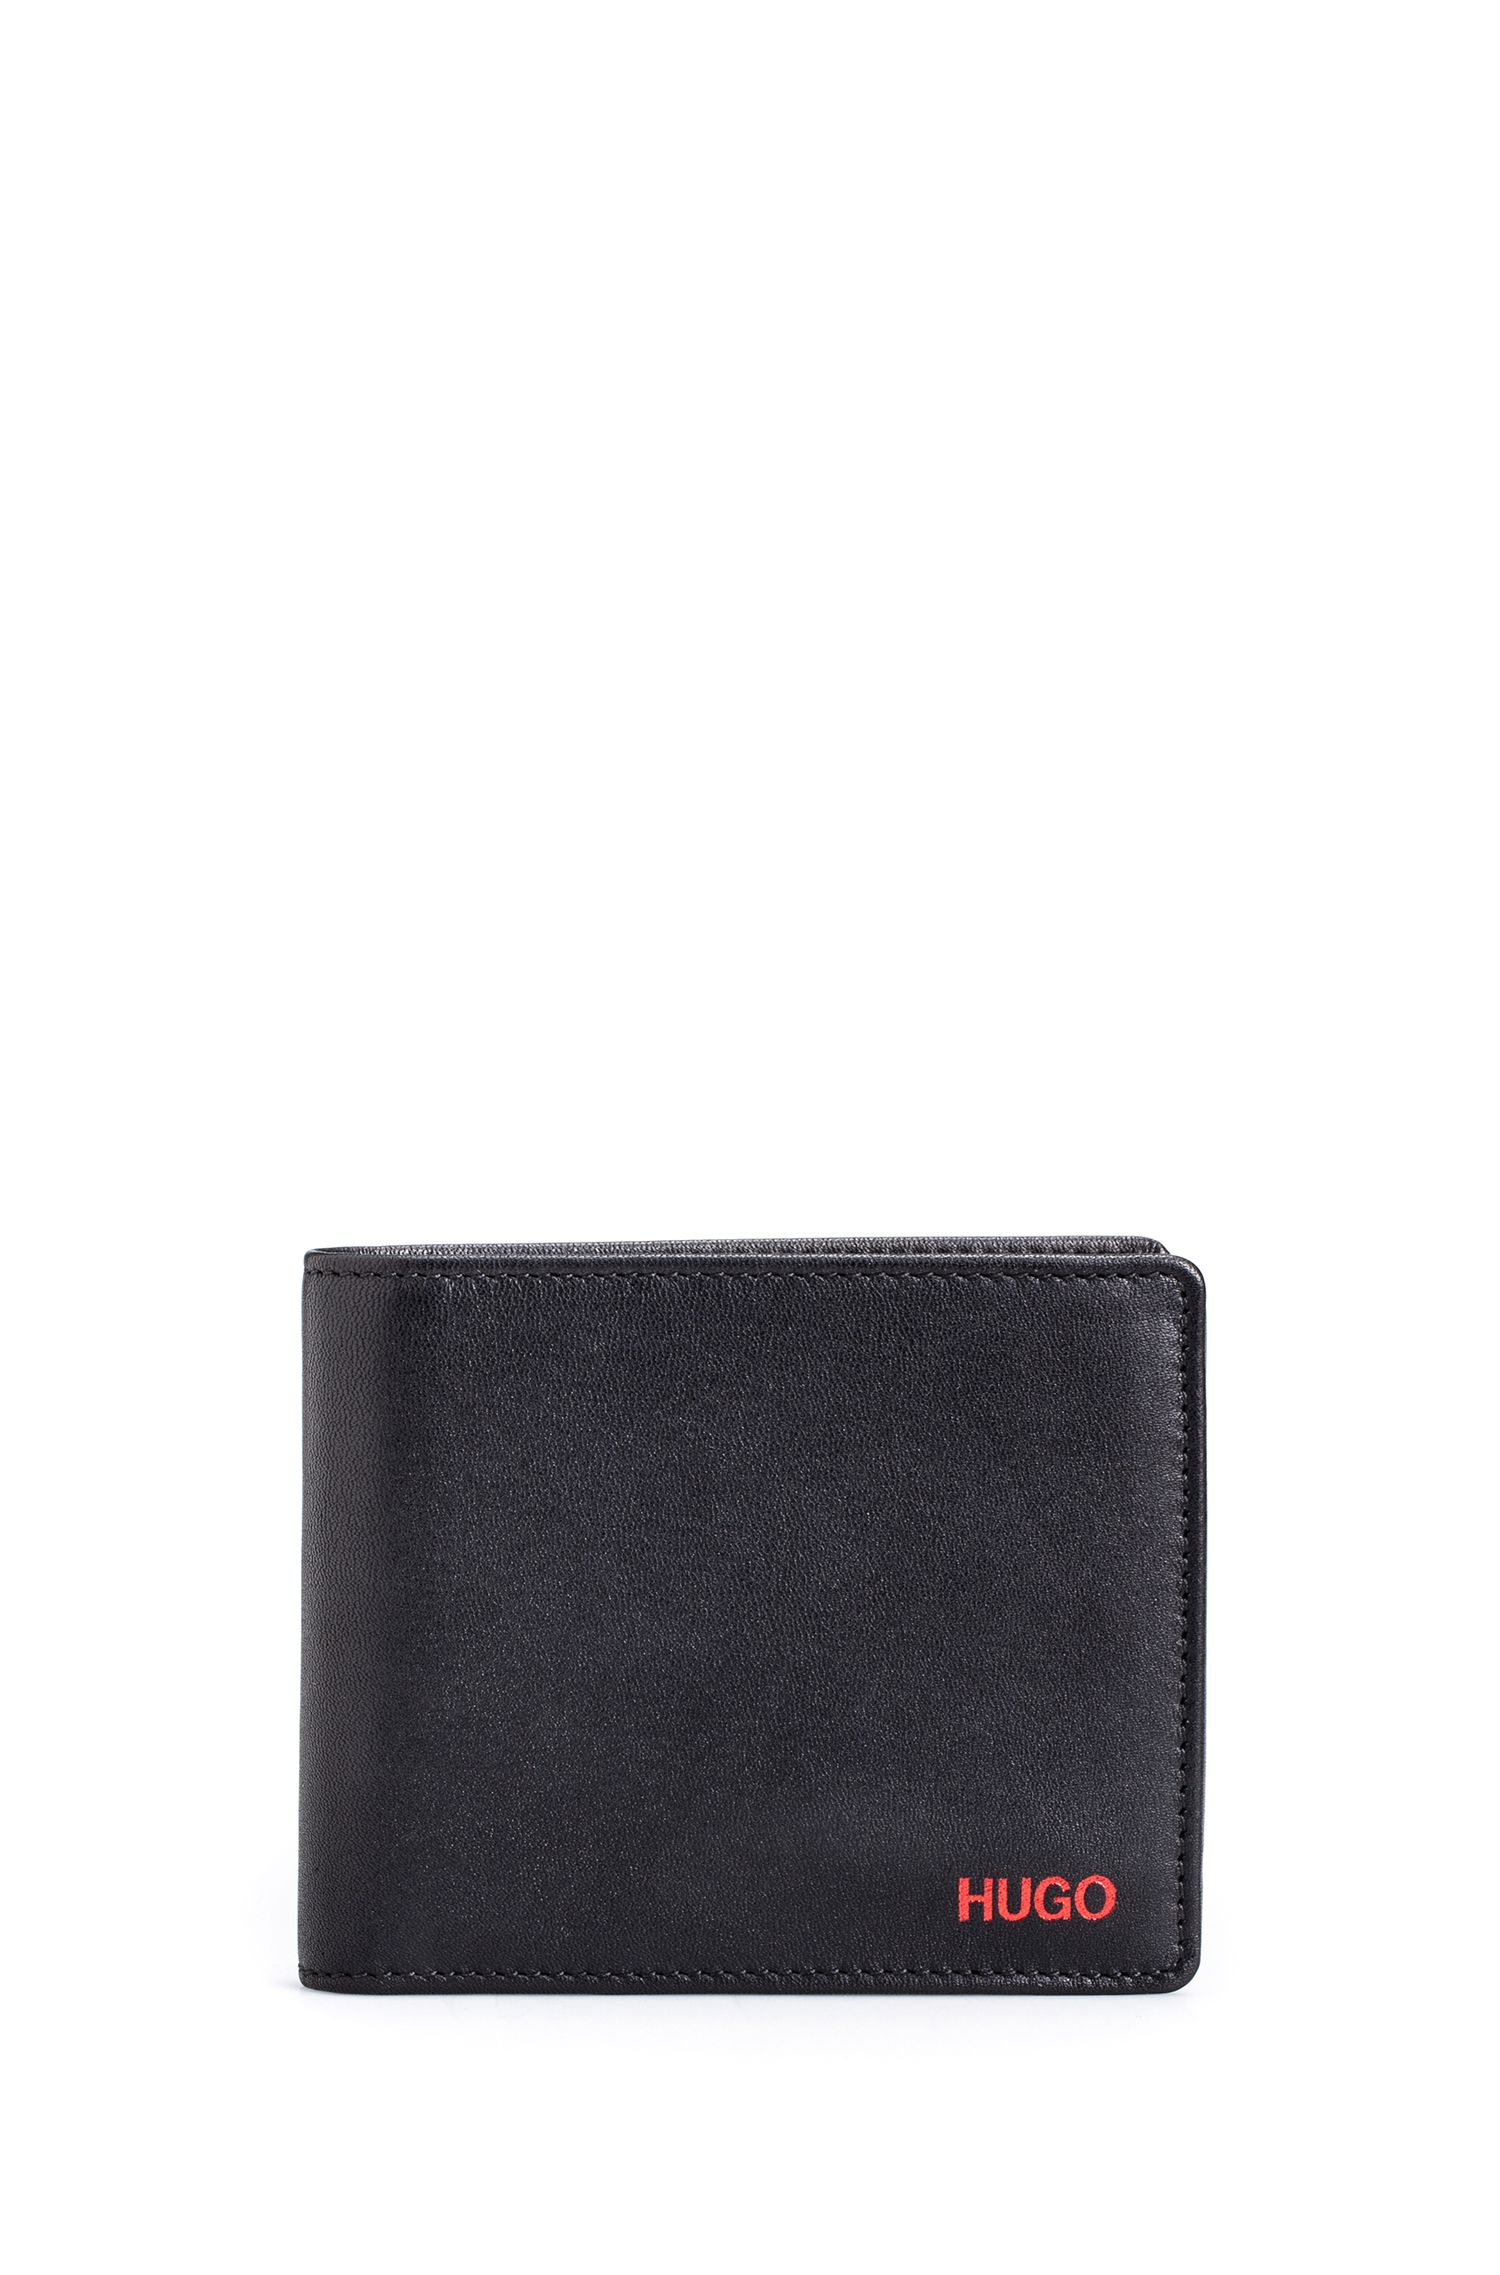 Tri-fold wallet in smooth leather, Black